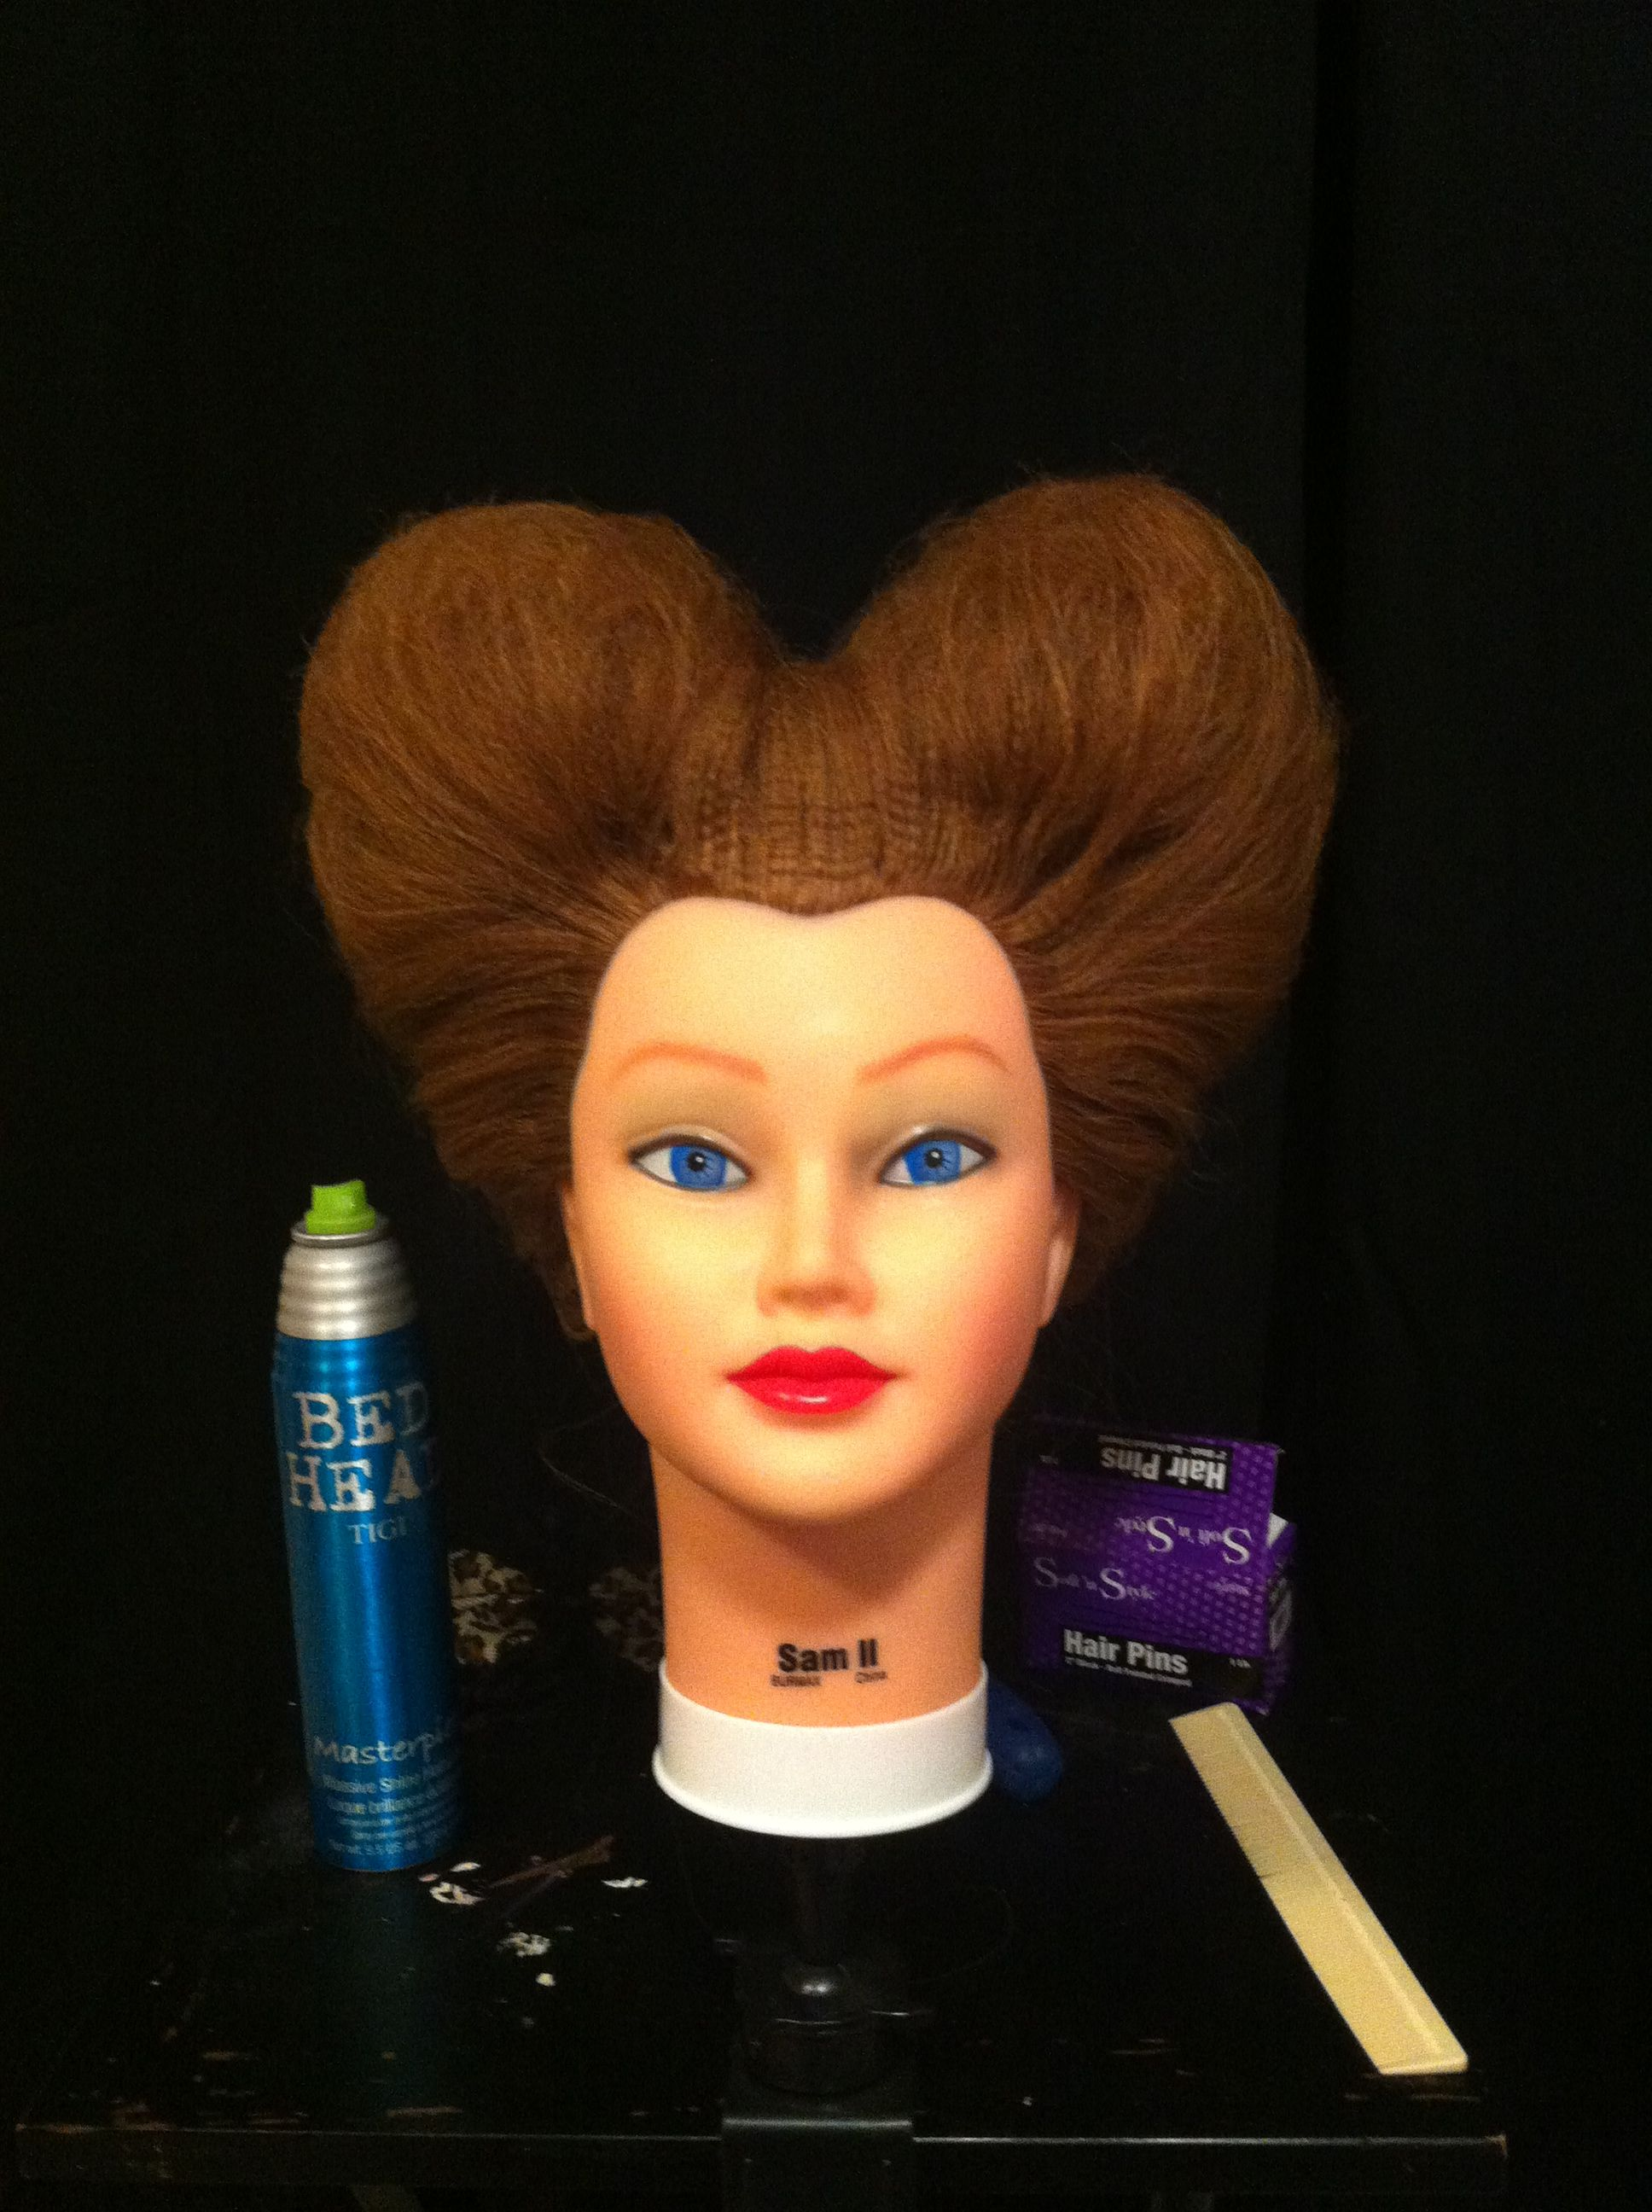 Queen of hearts hair from Alice in Wonderland! Great idea for Halloween hair for a costume!